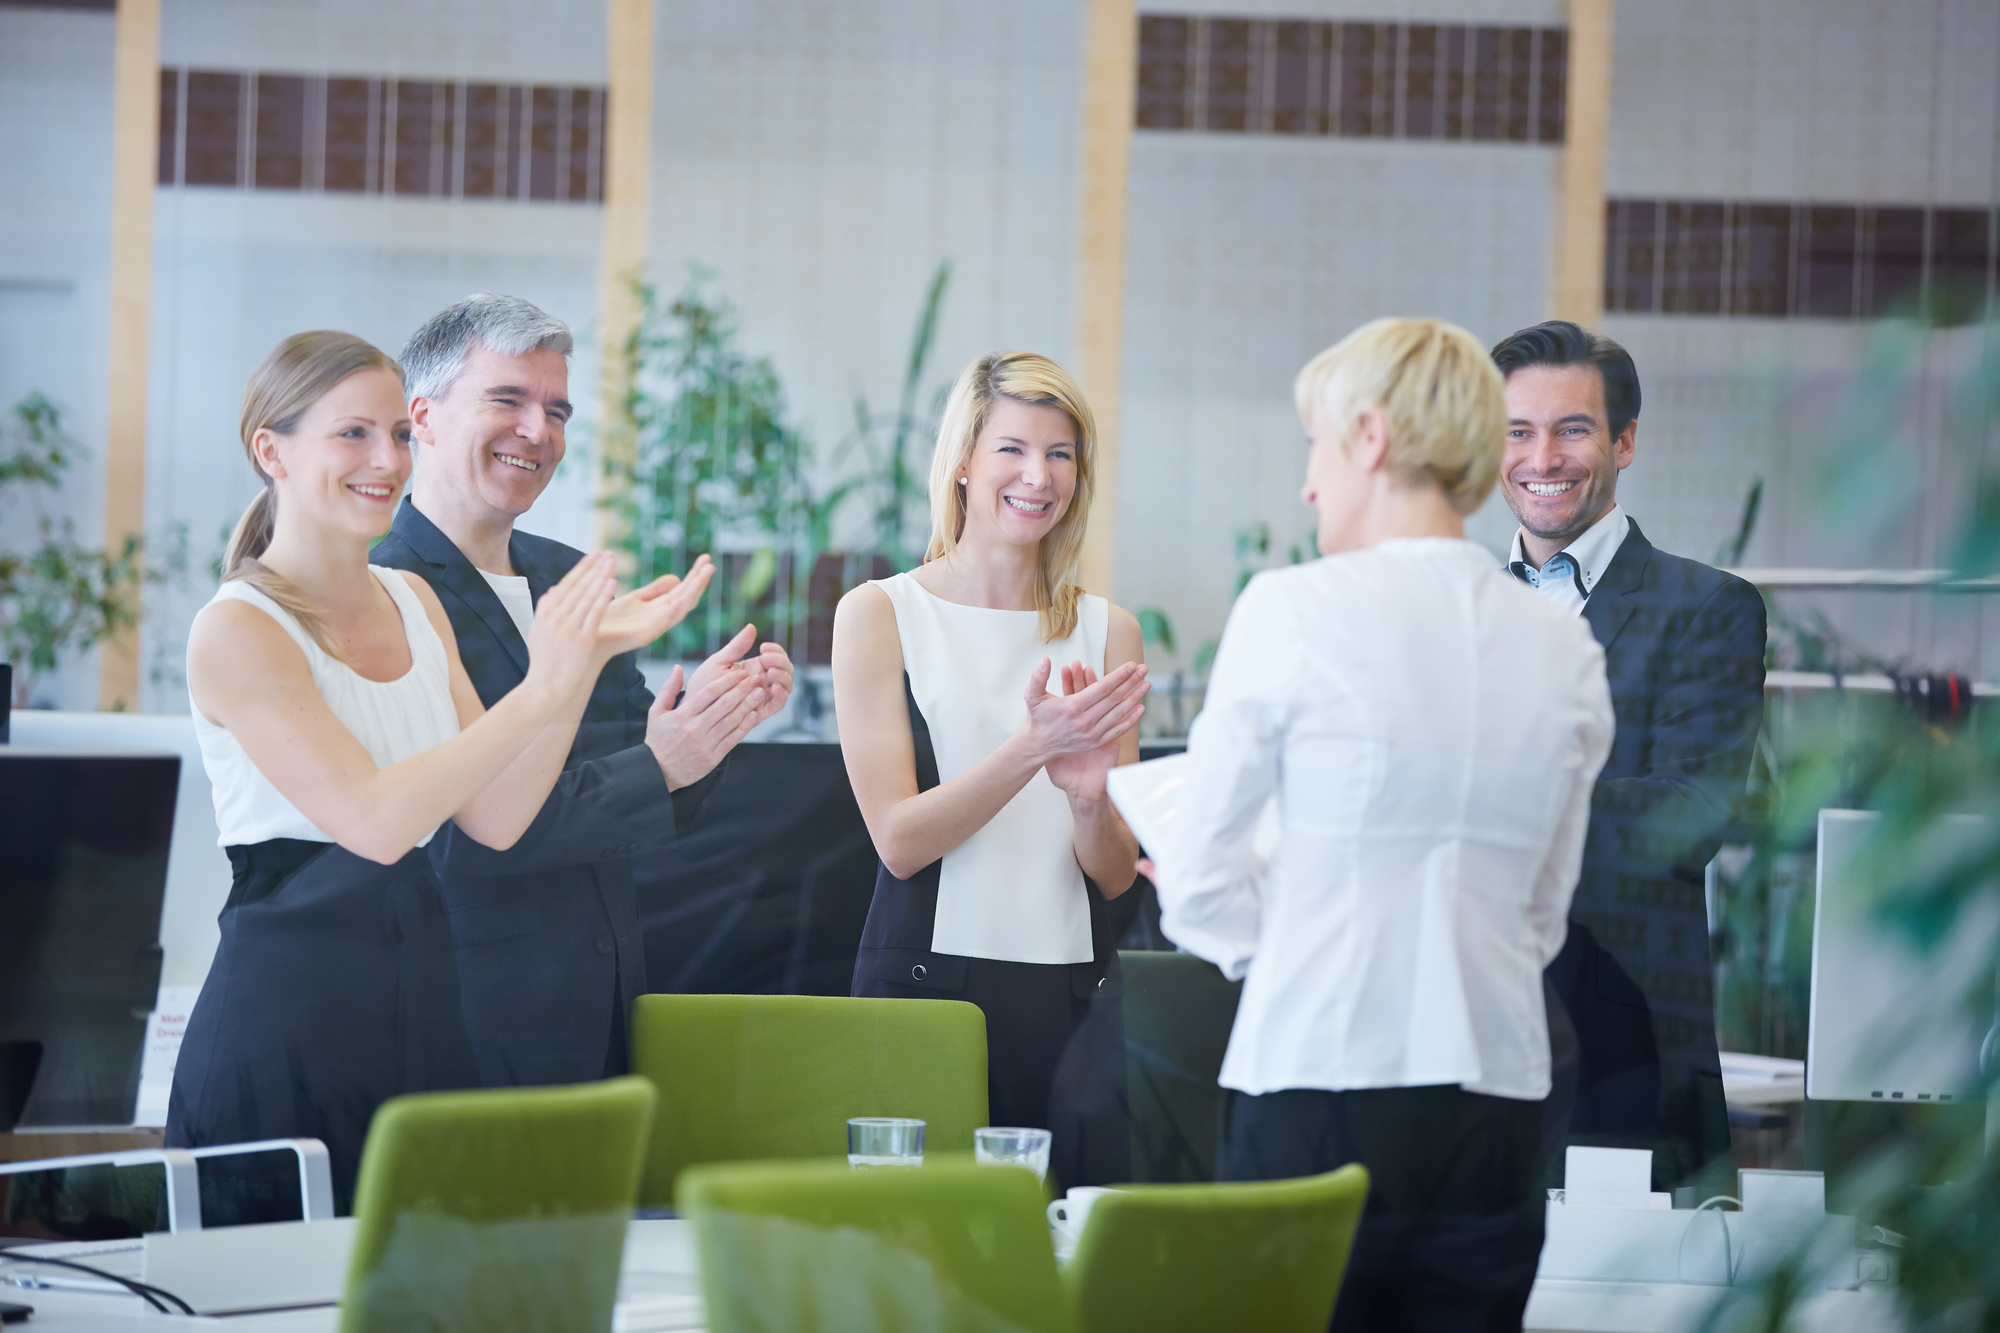 Why Employee Appreciation Events Are Key For Workplace Morale